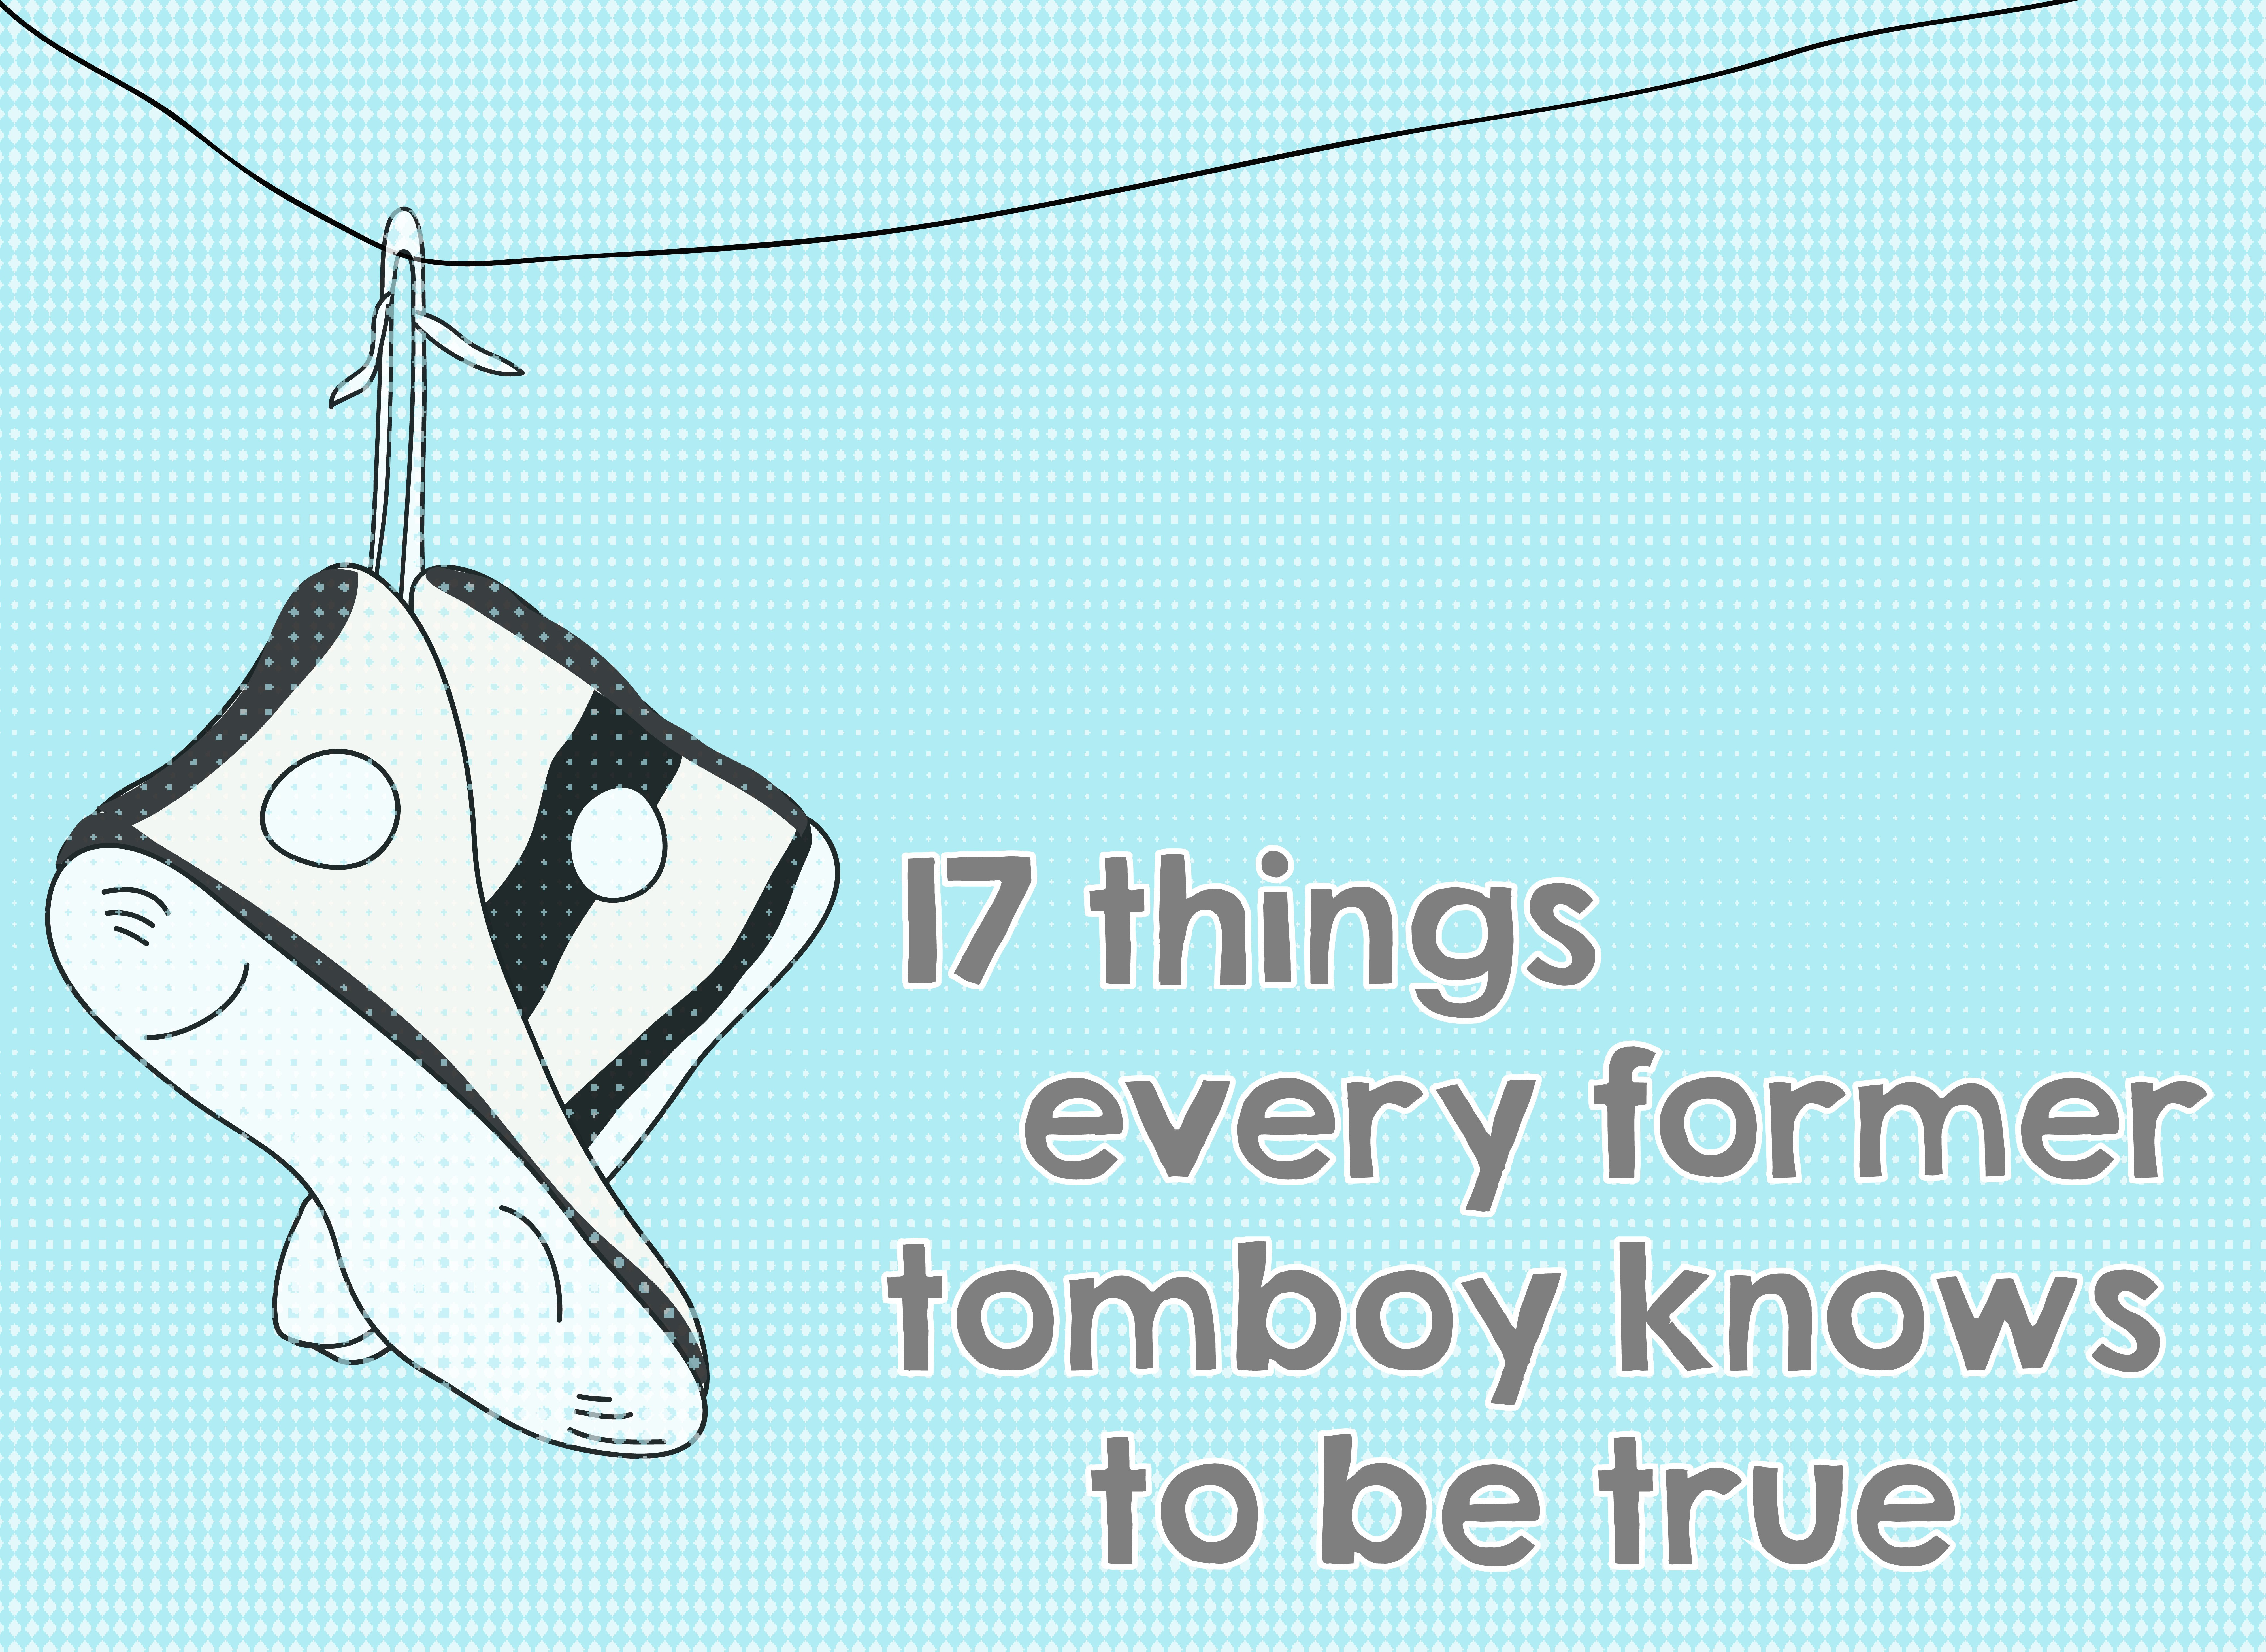 17 Things Every Former Tomboy Knows To Be True